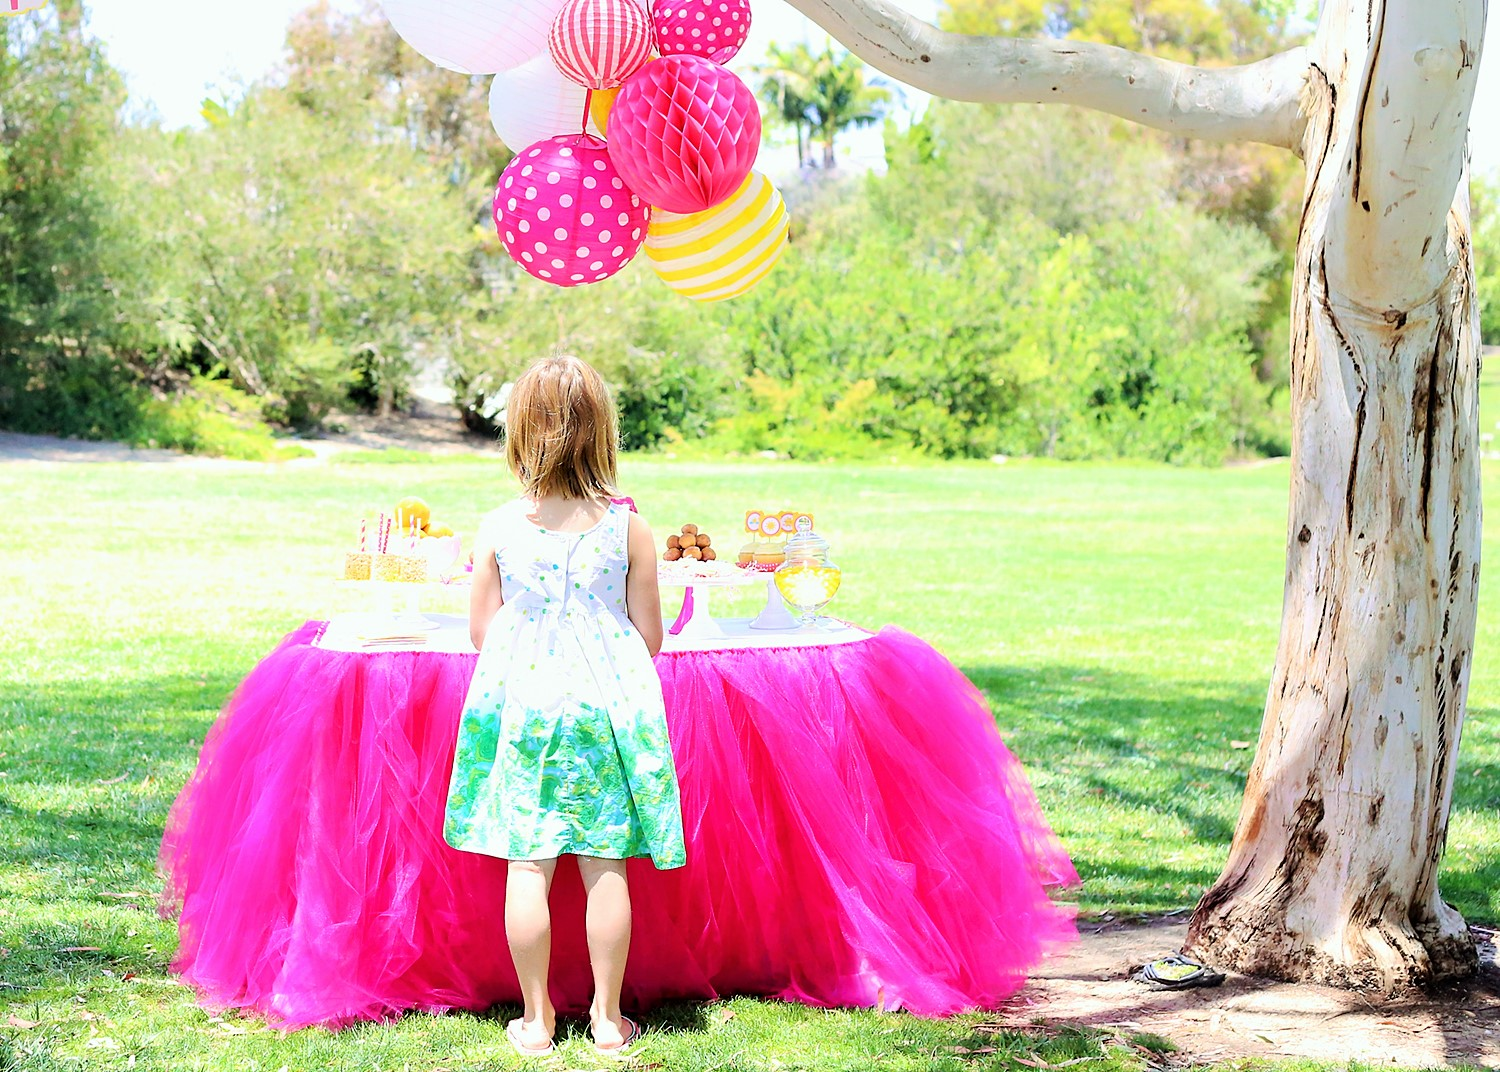 sunshine and lemonade party with custom table skirt